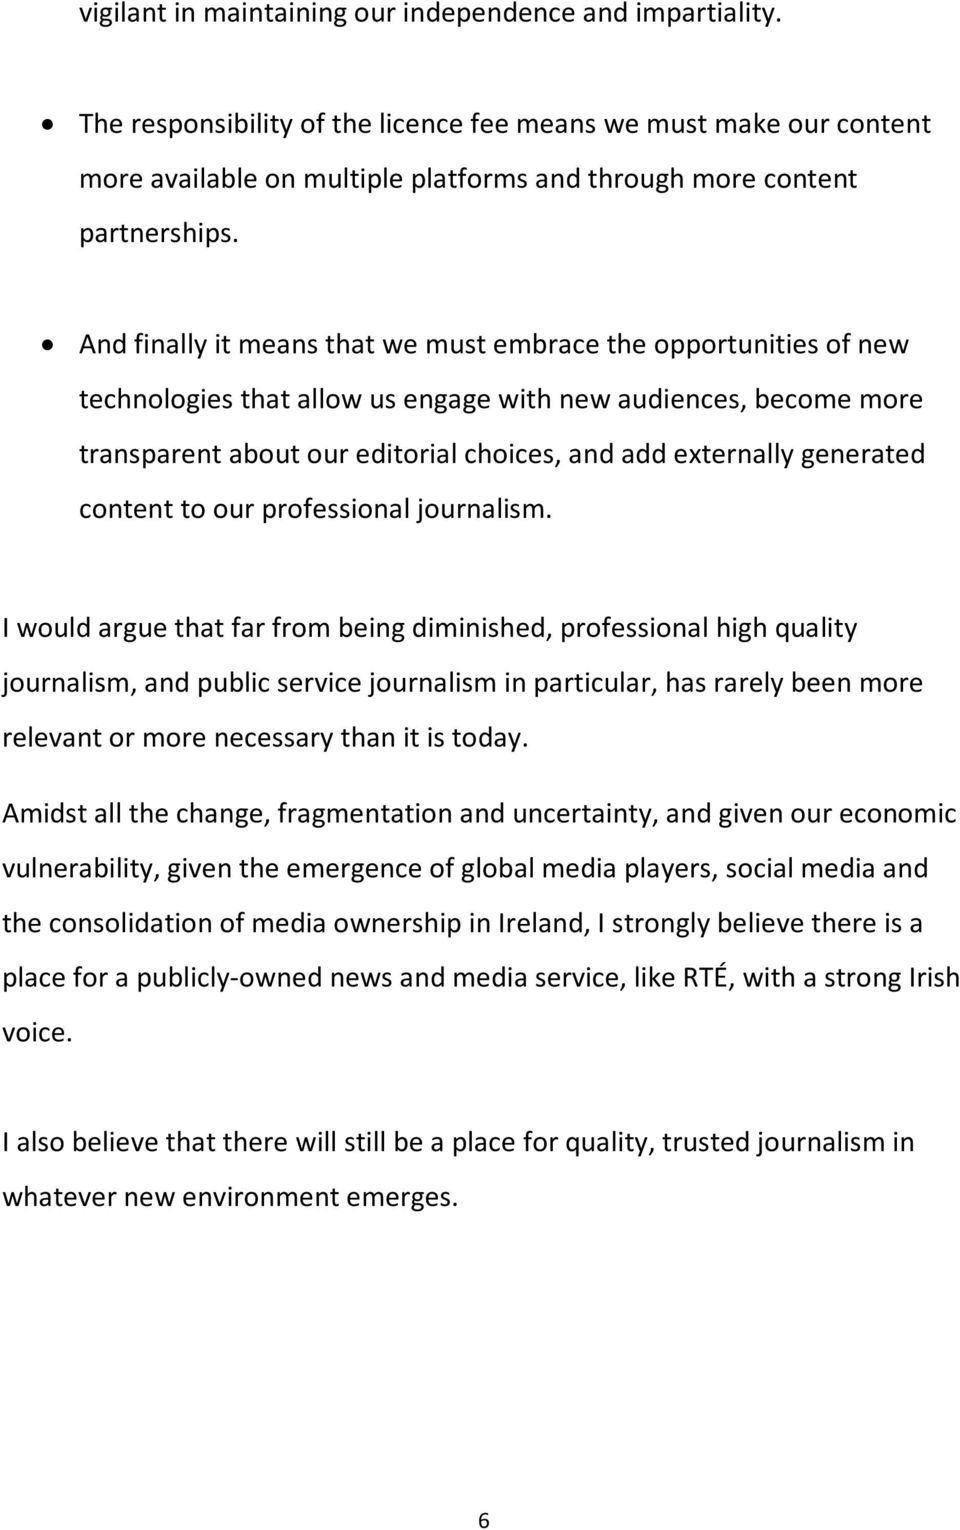 And finally it means that we must embrace the opportunities of new technologies that allow us engage with new audiences, become more transparent about our editorial choices, and add externally